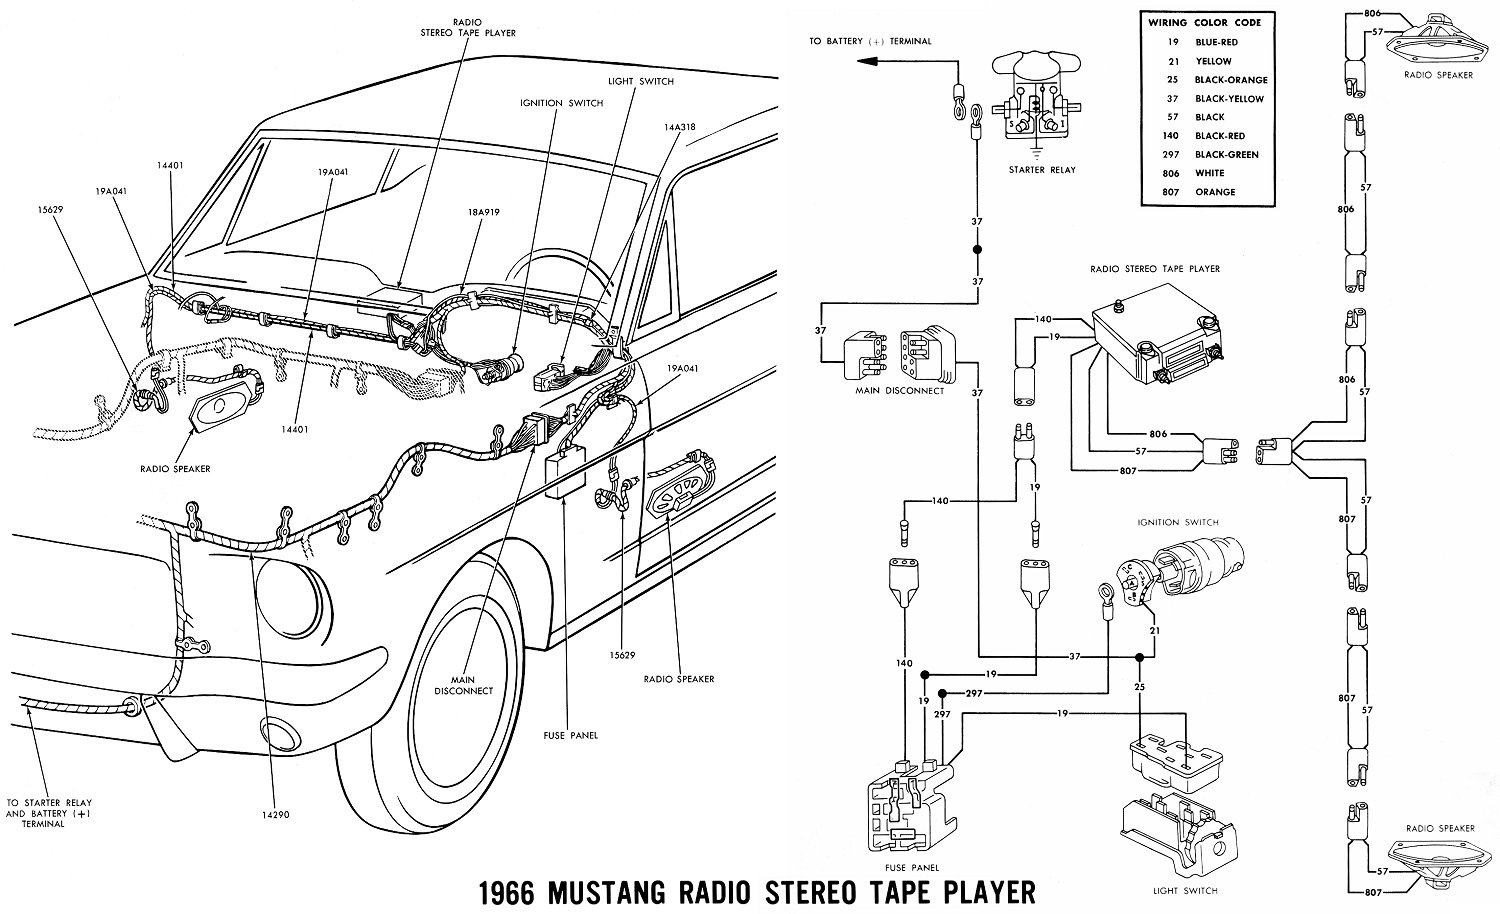 66stereo vintage mustang wiring diagrams wiring diagram for 69 mustang at gsmportal.co